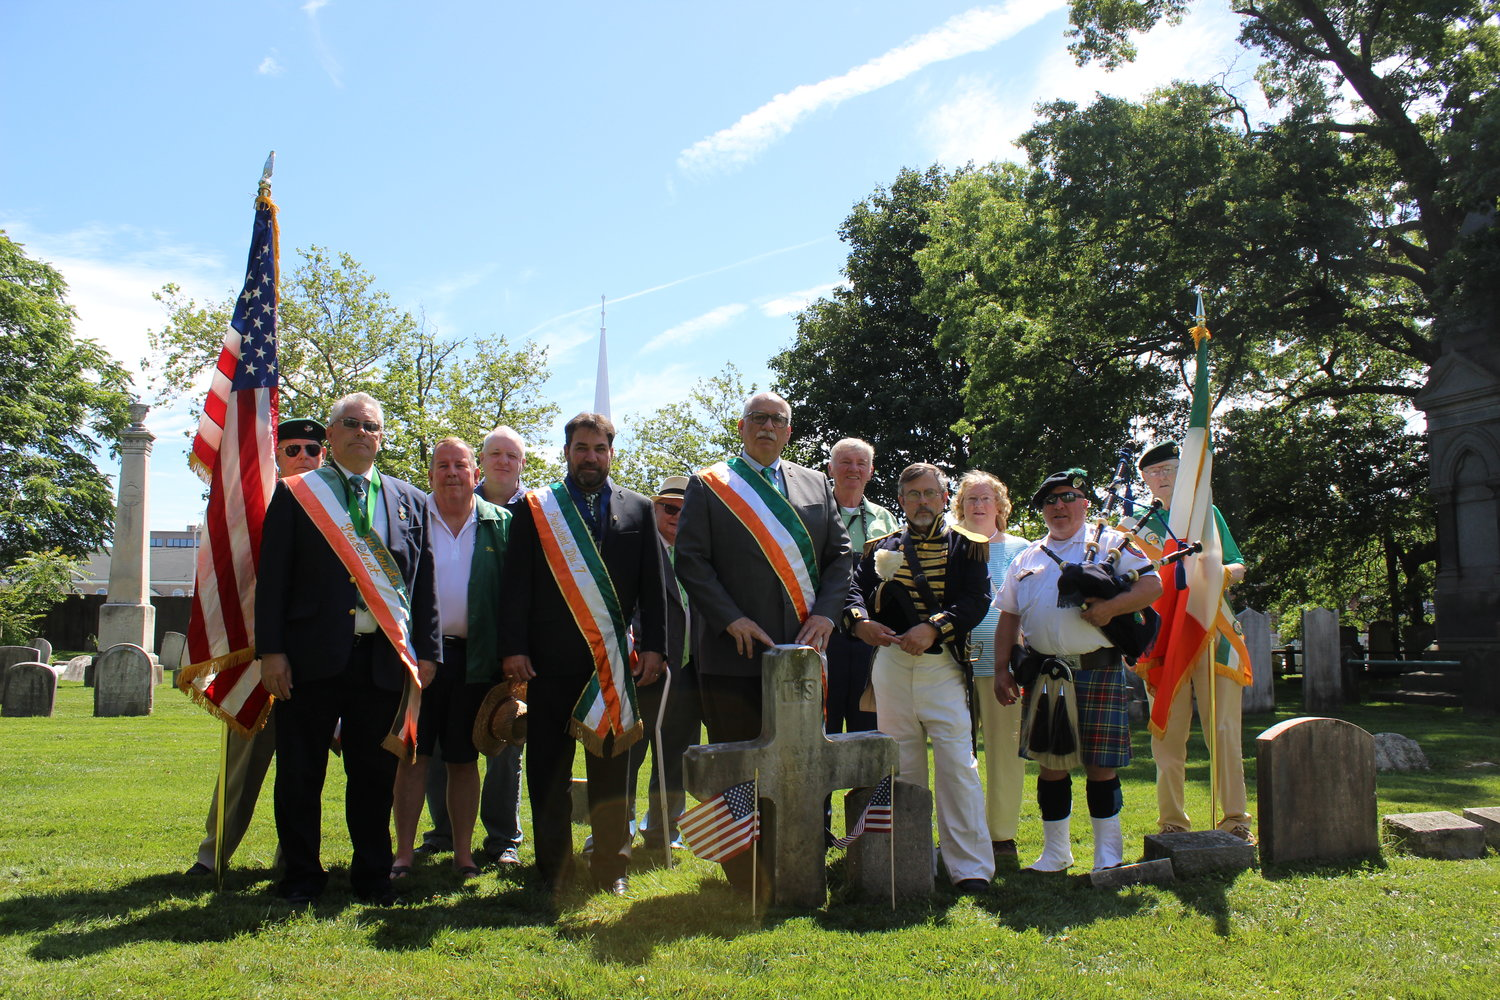 Town Councilman Dennis Dunne Sr. led a ceremony at the grave of Commodore George Coleman de Kay at his place of his burial in the cemetery of St. George's Episcopal Church in Hempstead on June 15.